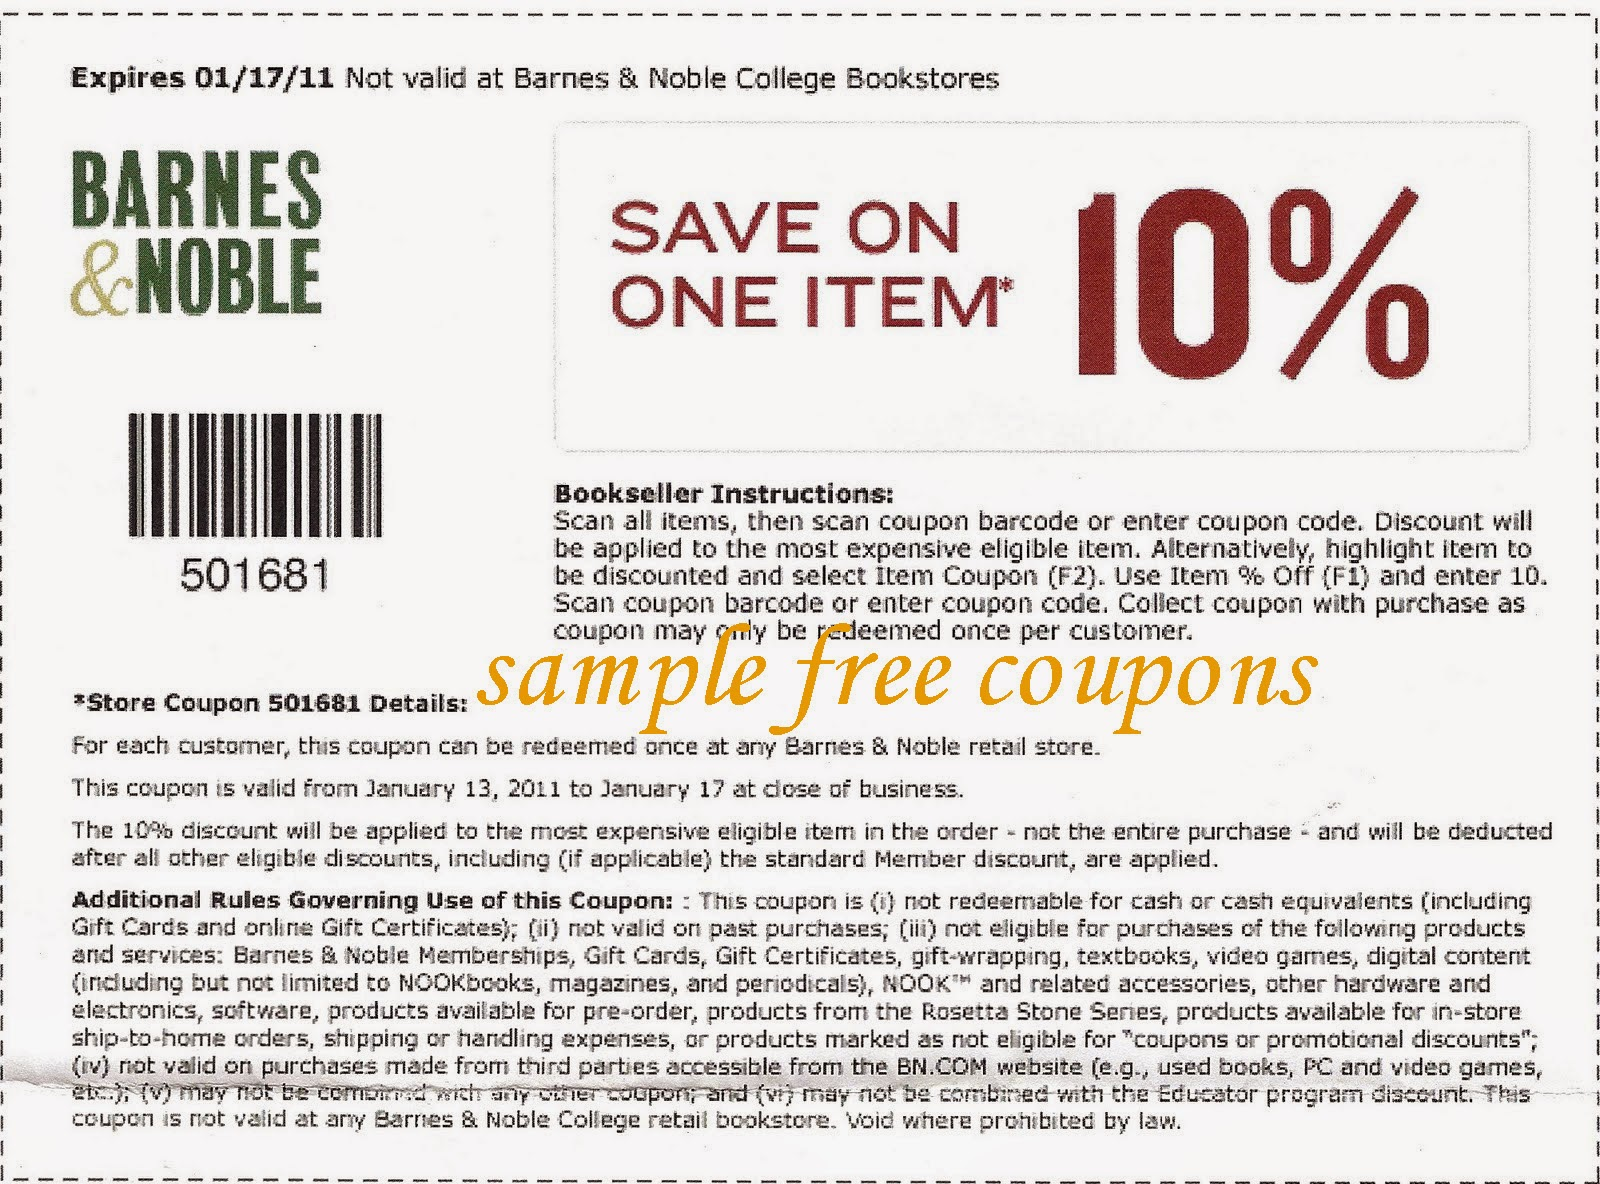 barnes and noble coupon codes free online coupons promo codes printable coupons and free shipping codes